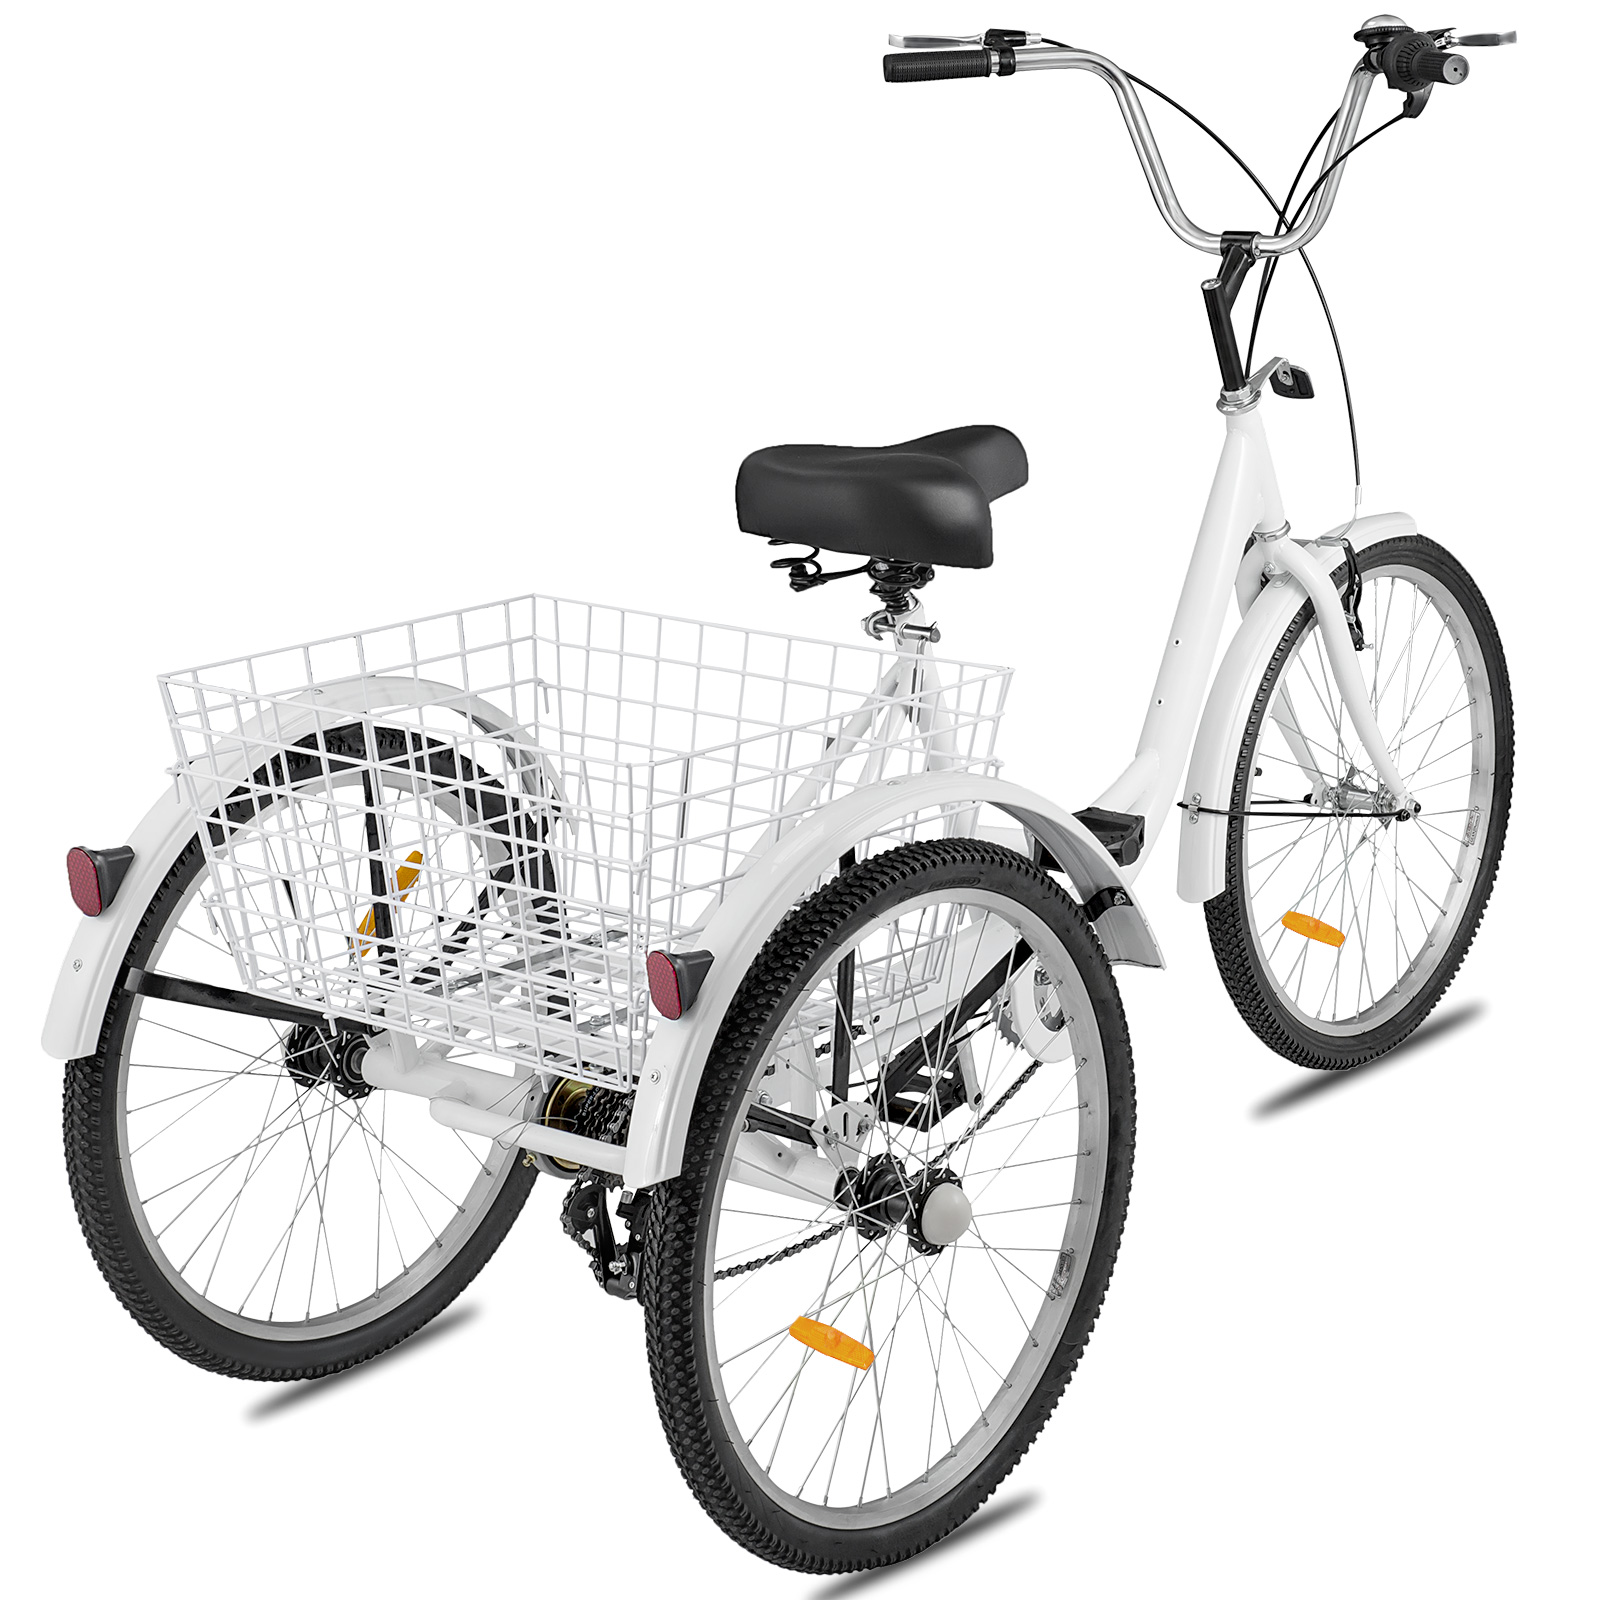 20-24-26-034-Adult-Tricycle-1-7-Speed-3-Wheel-Large-Basket-For-Shopping-Optional thumbnail 47